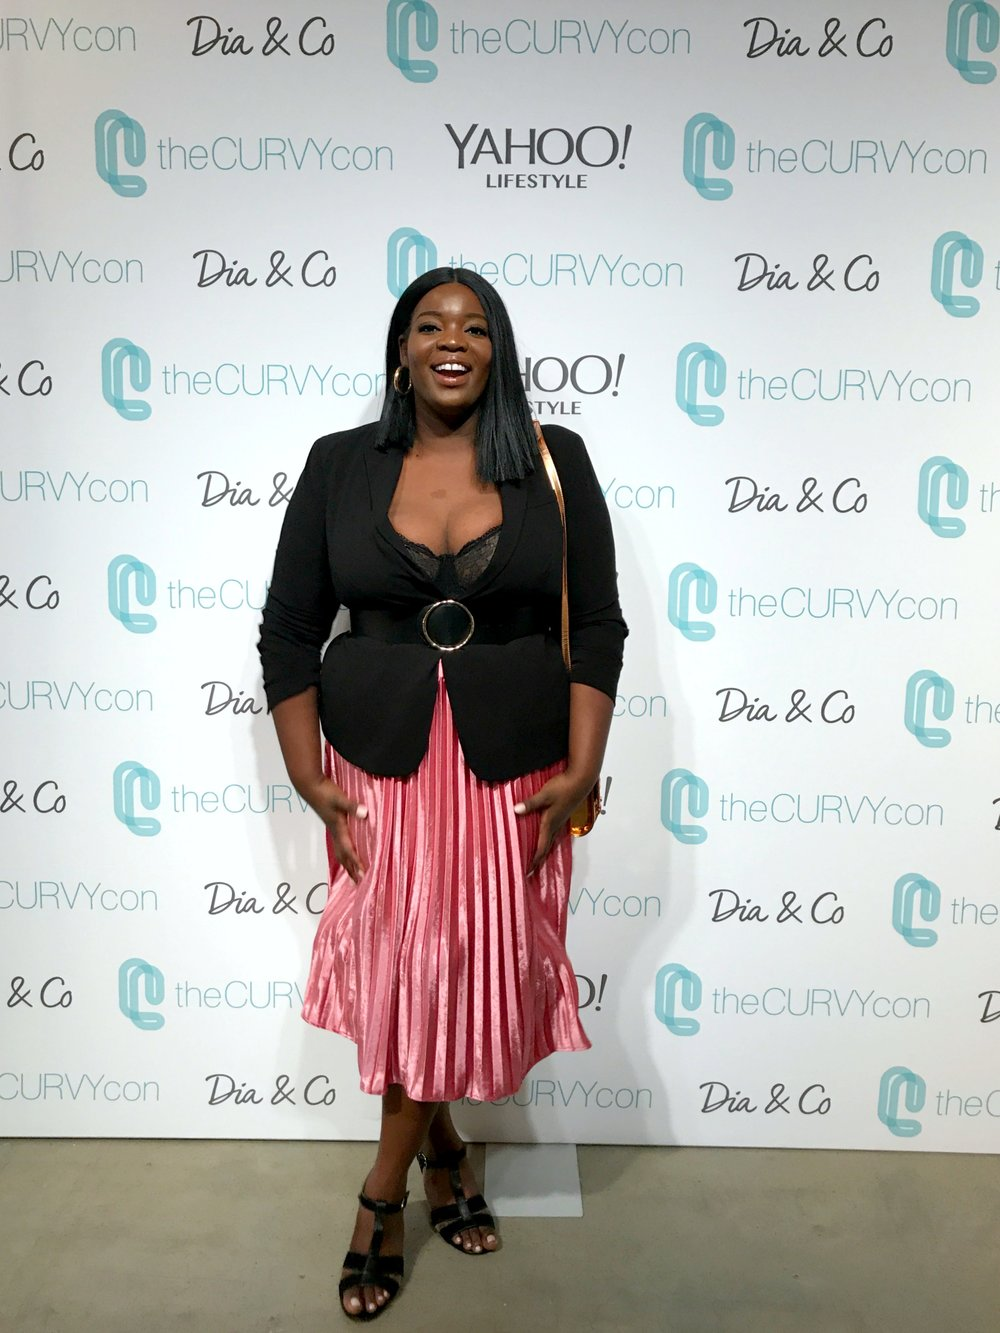 2. The Curvy Con.  - The Curvy Con is an annual conference that brings together plus size brands, bloggers, and fashionistas. This year it took NYFW by storm!